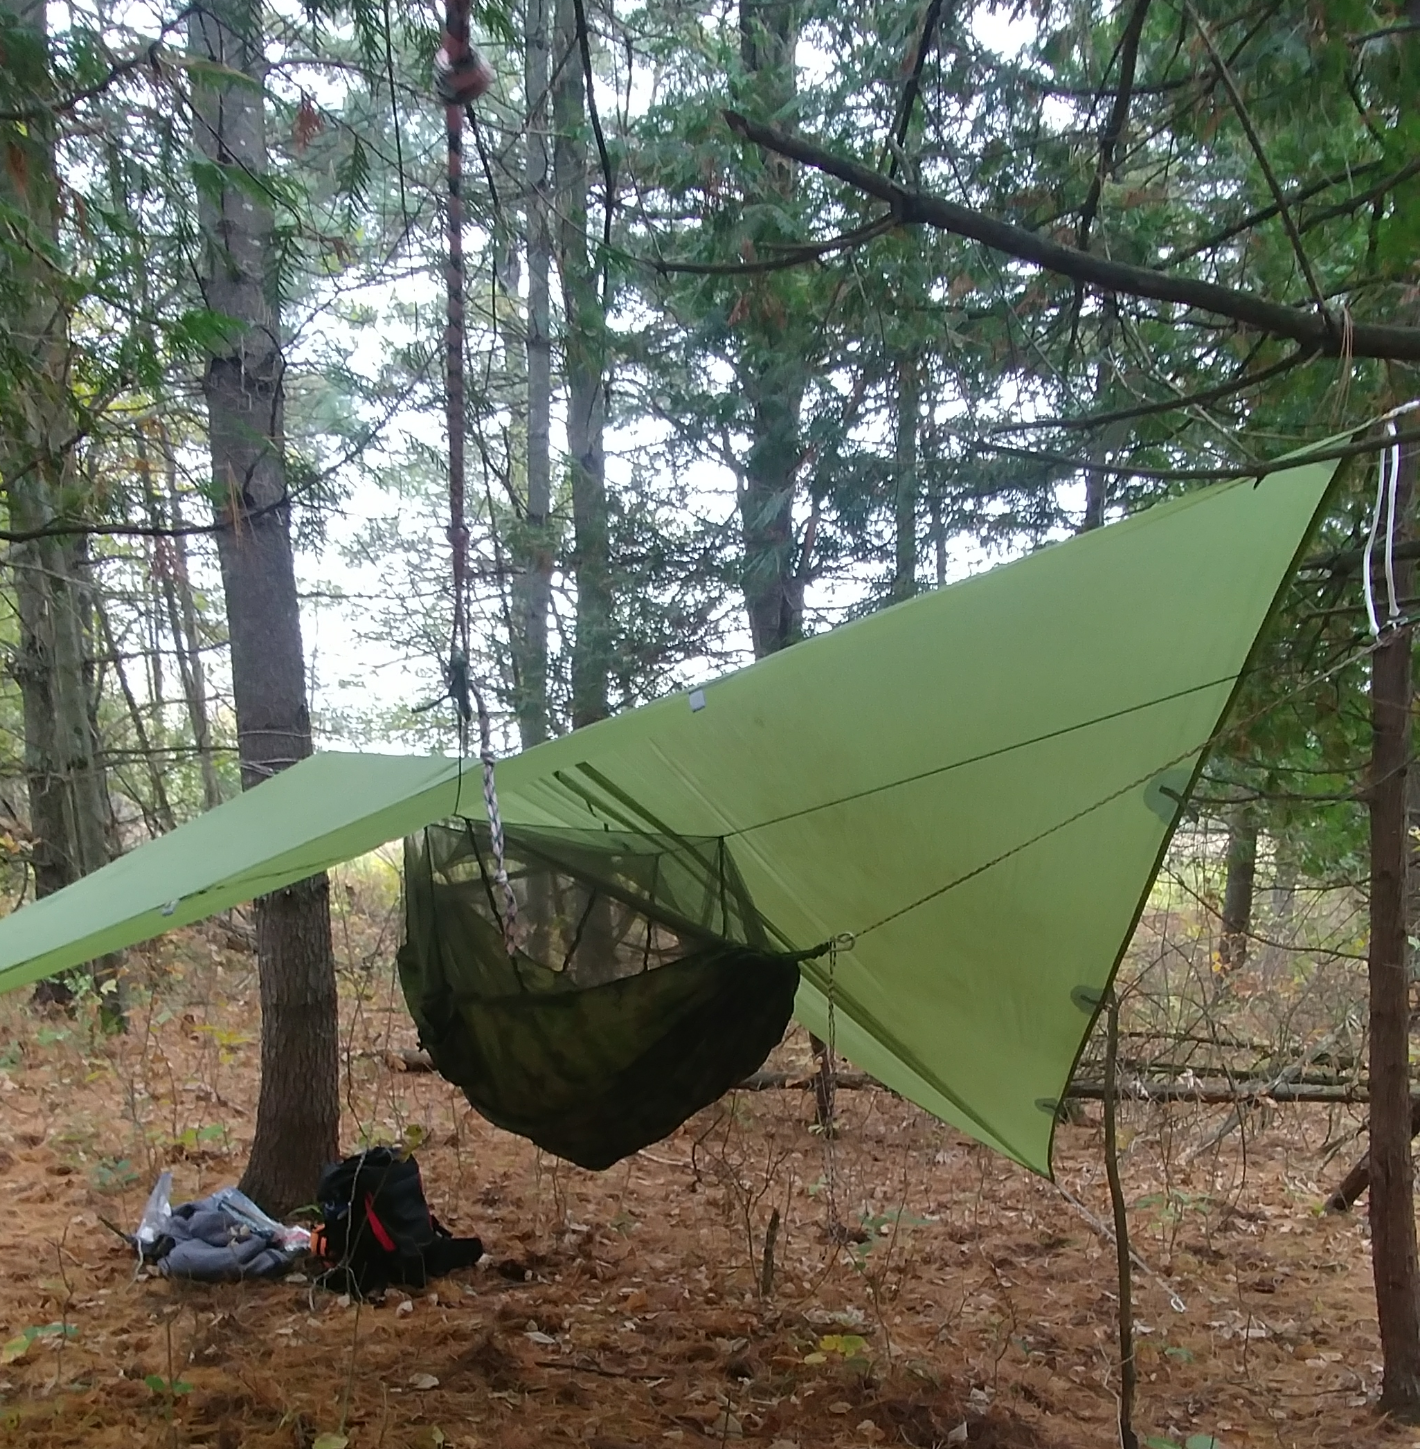 the first of many reasons as to why hammock camping is superior to every other form of camping is the simplicity of setting up a hammock  the superiority of hammock camping  u2013 united green alliance  u2013 medium  rh   medium